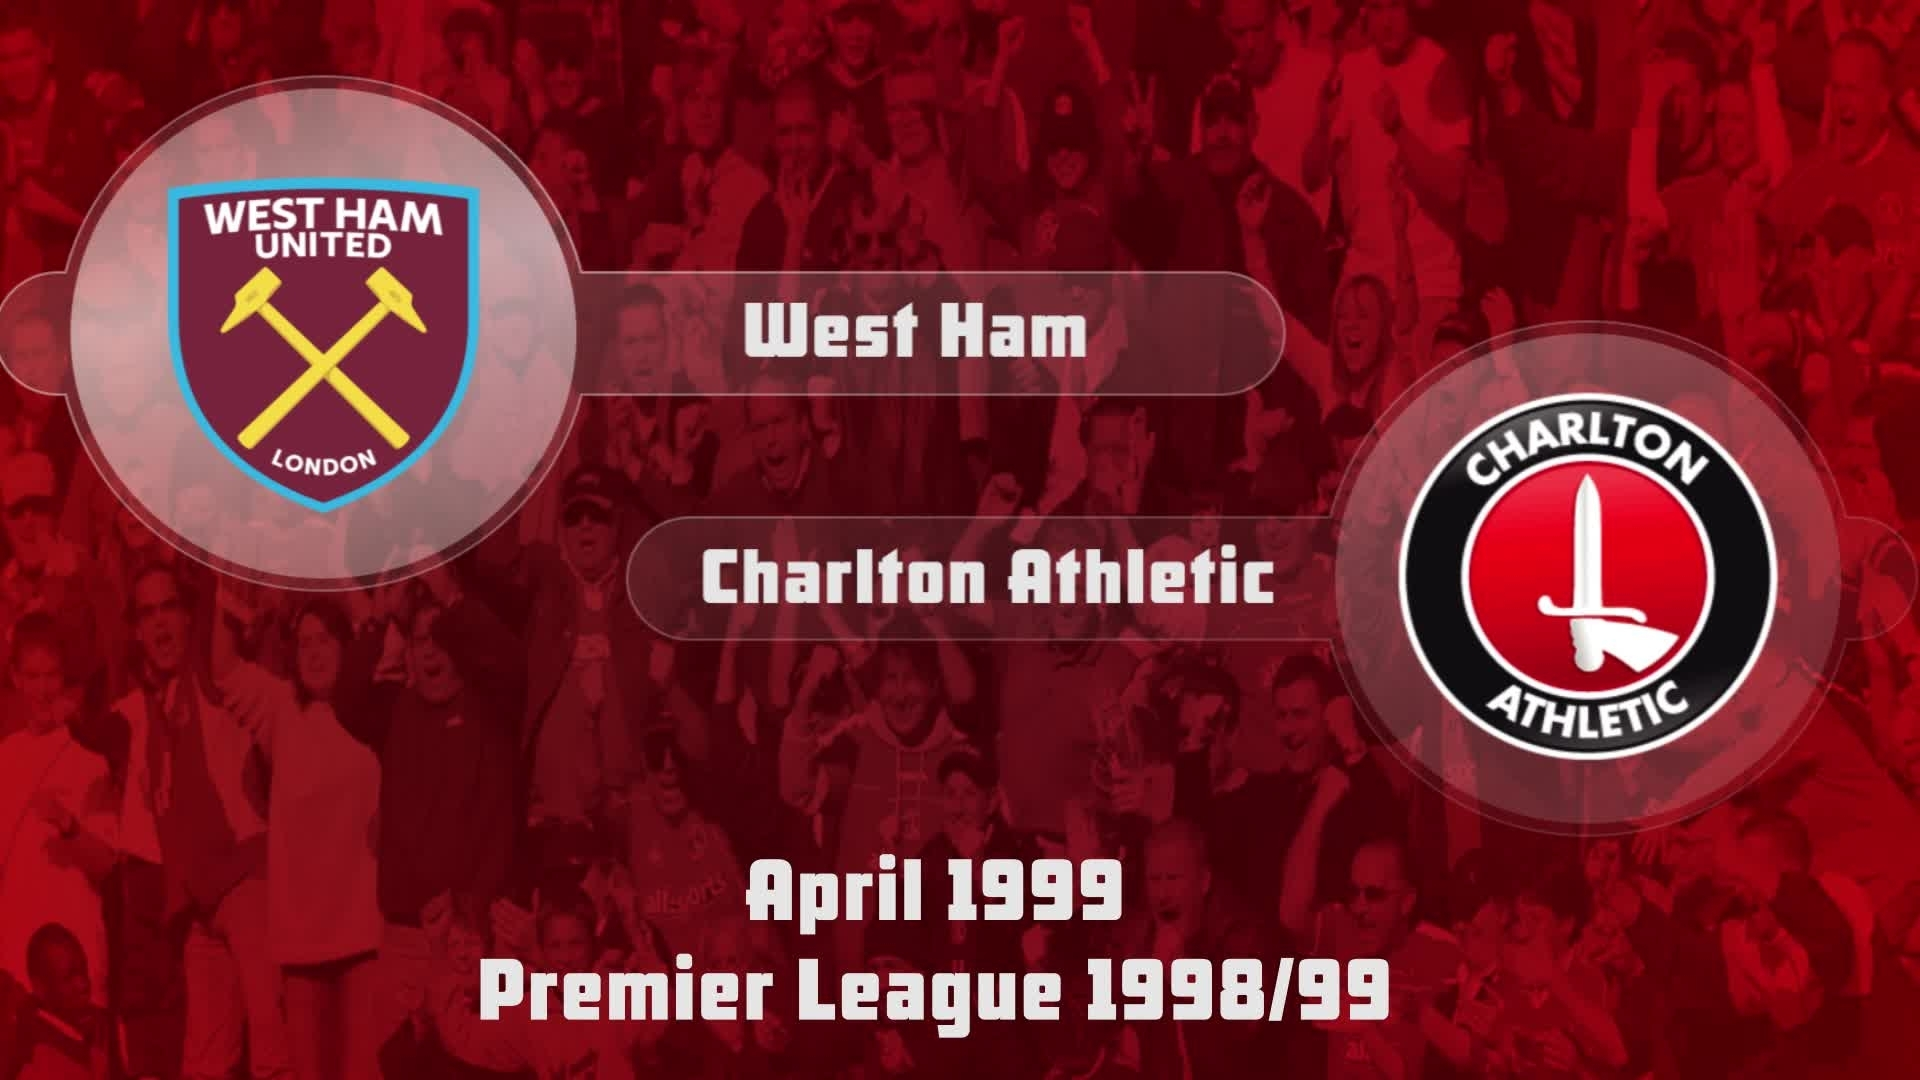 35 HIGHLIGHTS | West Ham 0 Charlton 1 (April 1999)